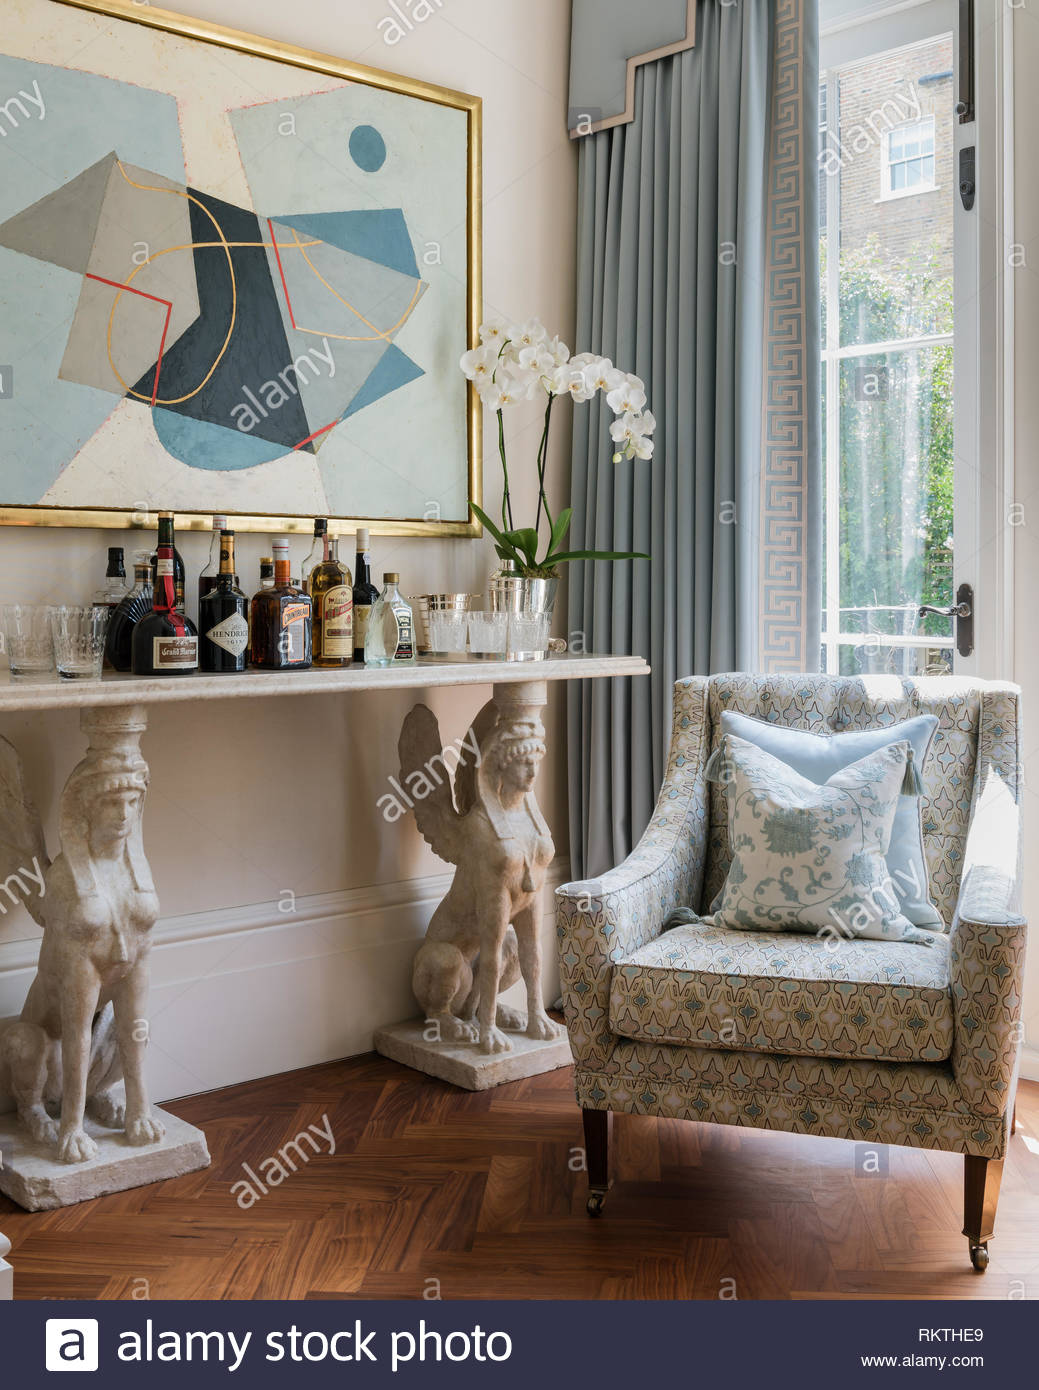 Large artwork by Jeremy Annear above marble topped drinks shelf with caryatid sphinx and an upholstered armchair - Stock Image